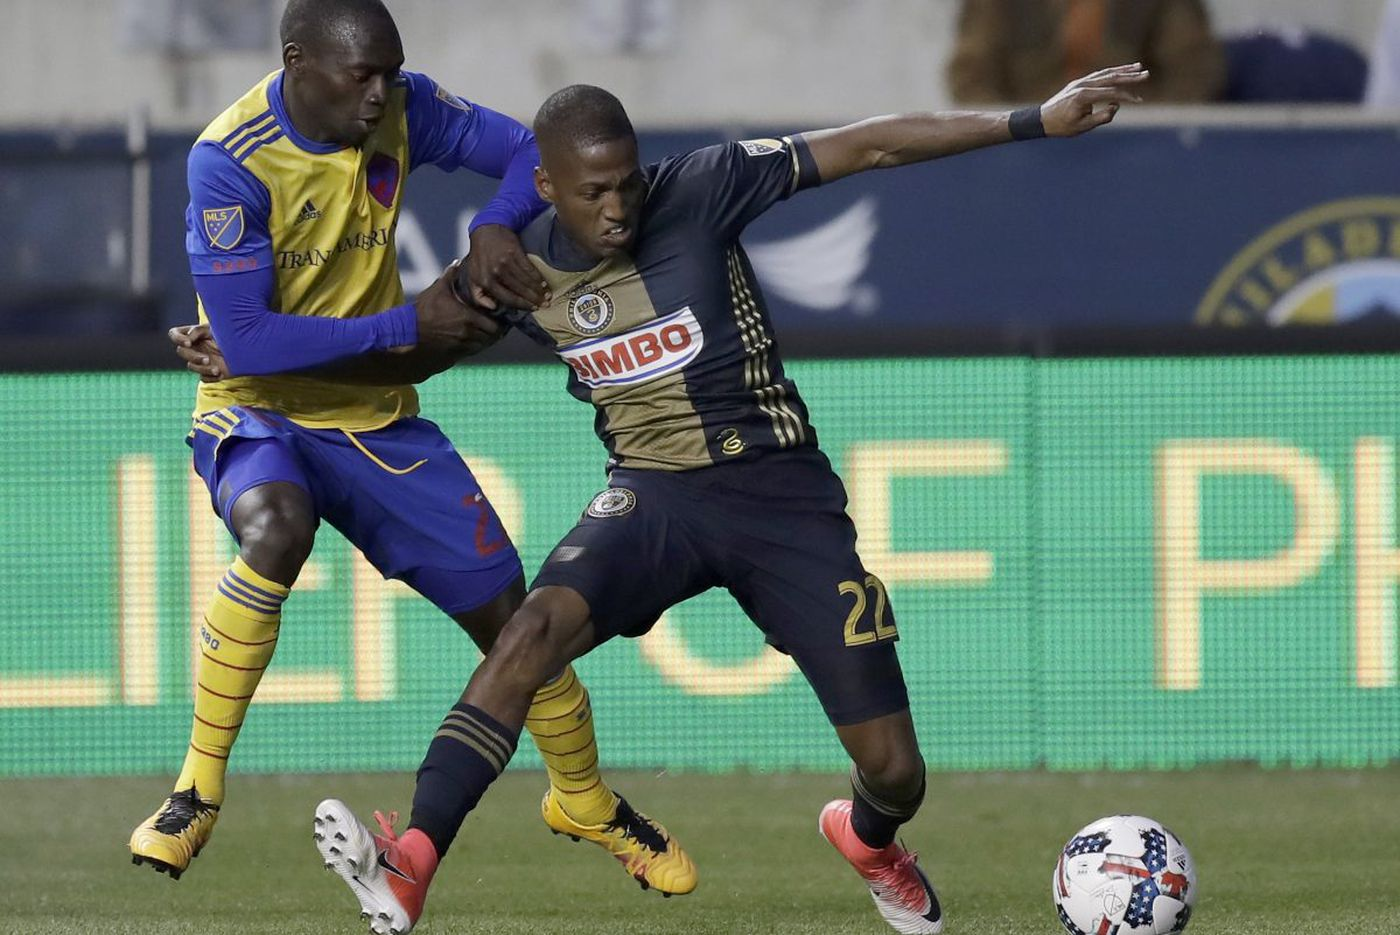 Union's Fafa Picault loses appeal of suspension; won't play vs. Columbus, Colorado